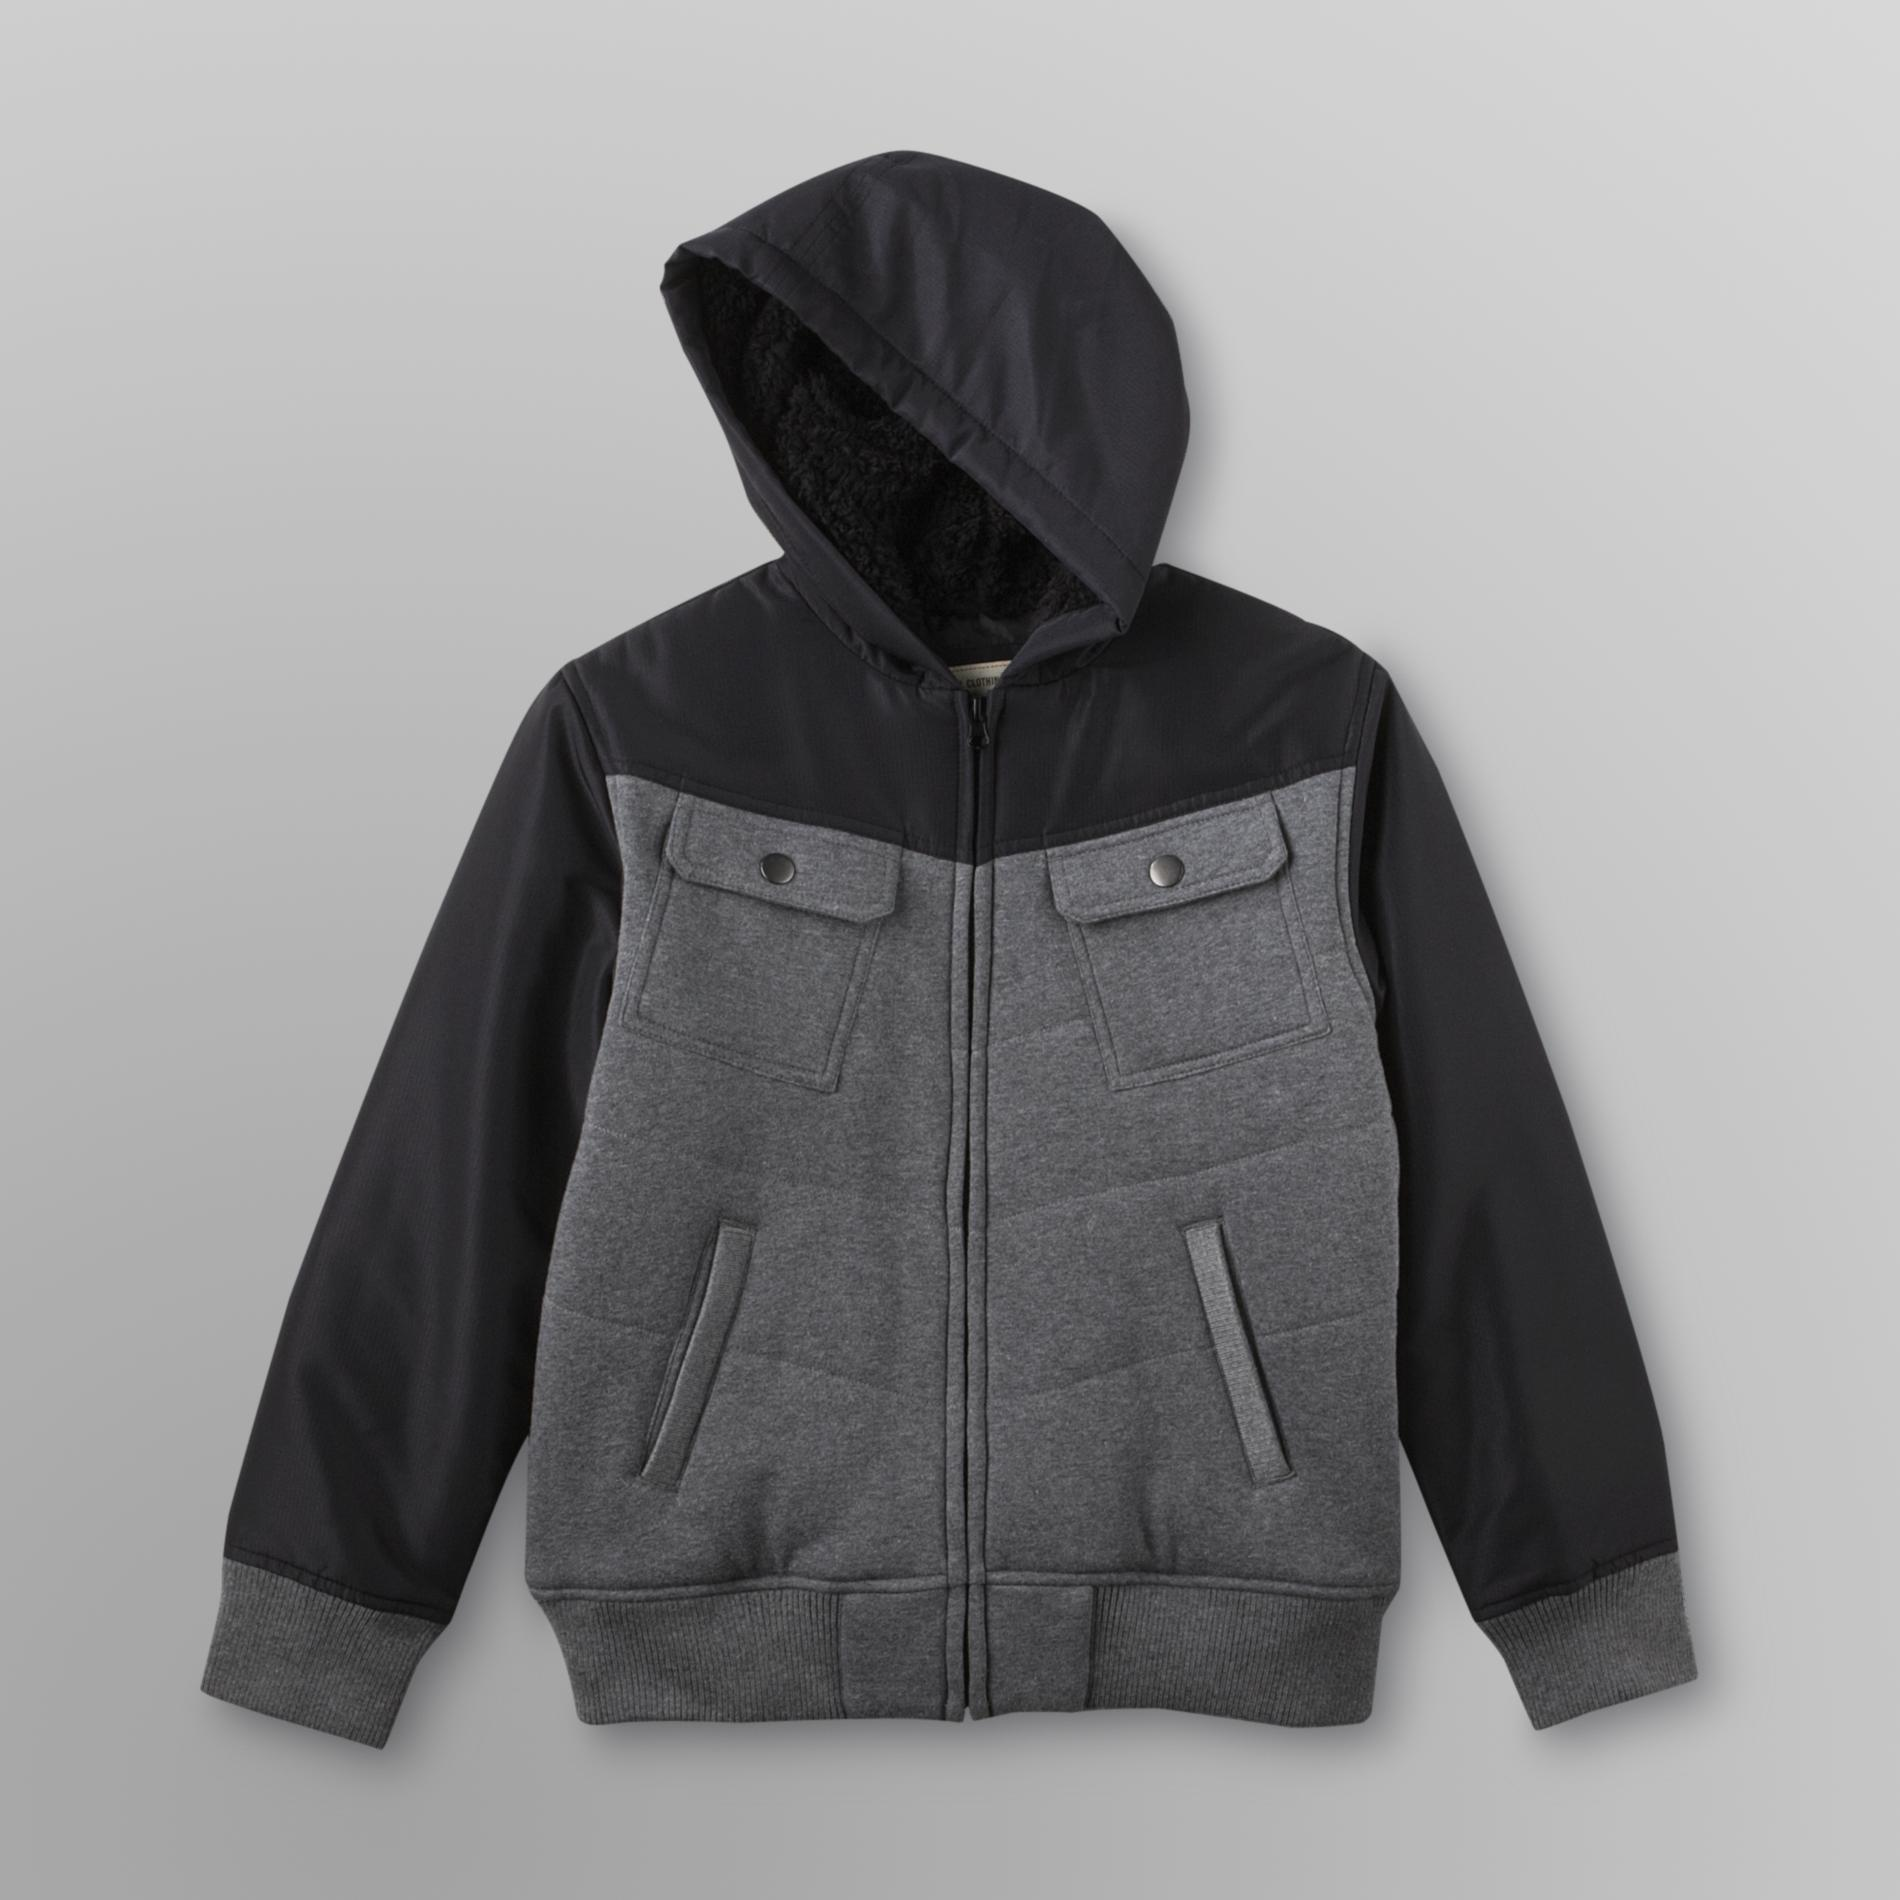 a1ed80f3c Route 66 Boy s Hooded Bomber Jacket